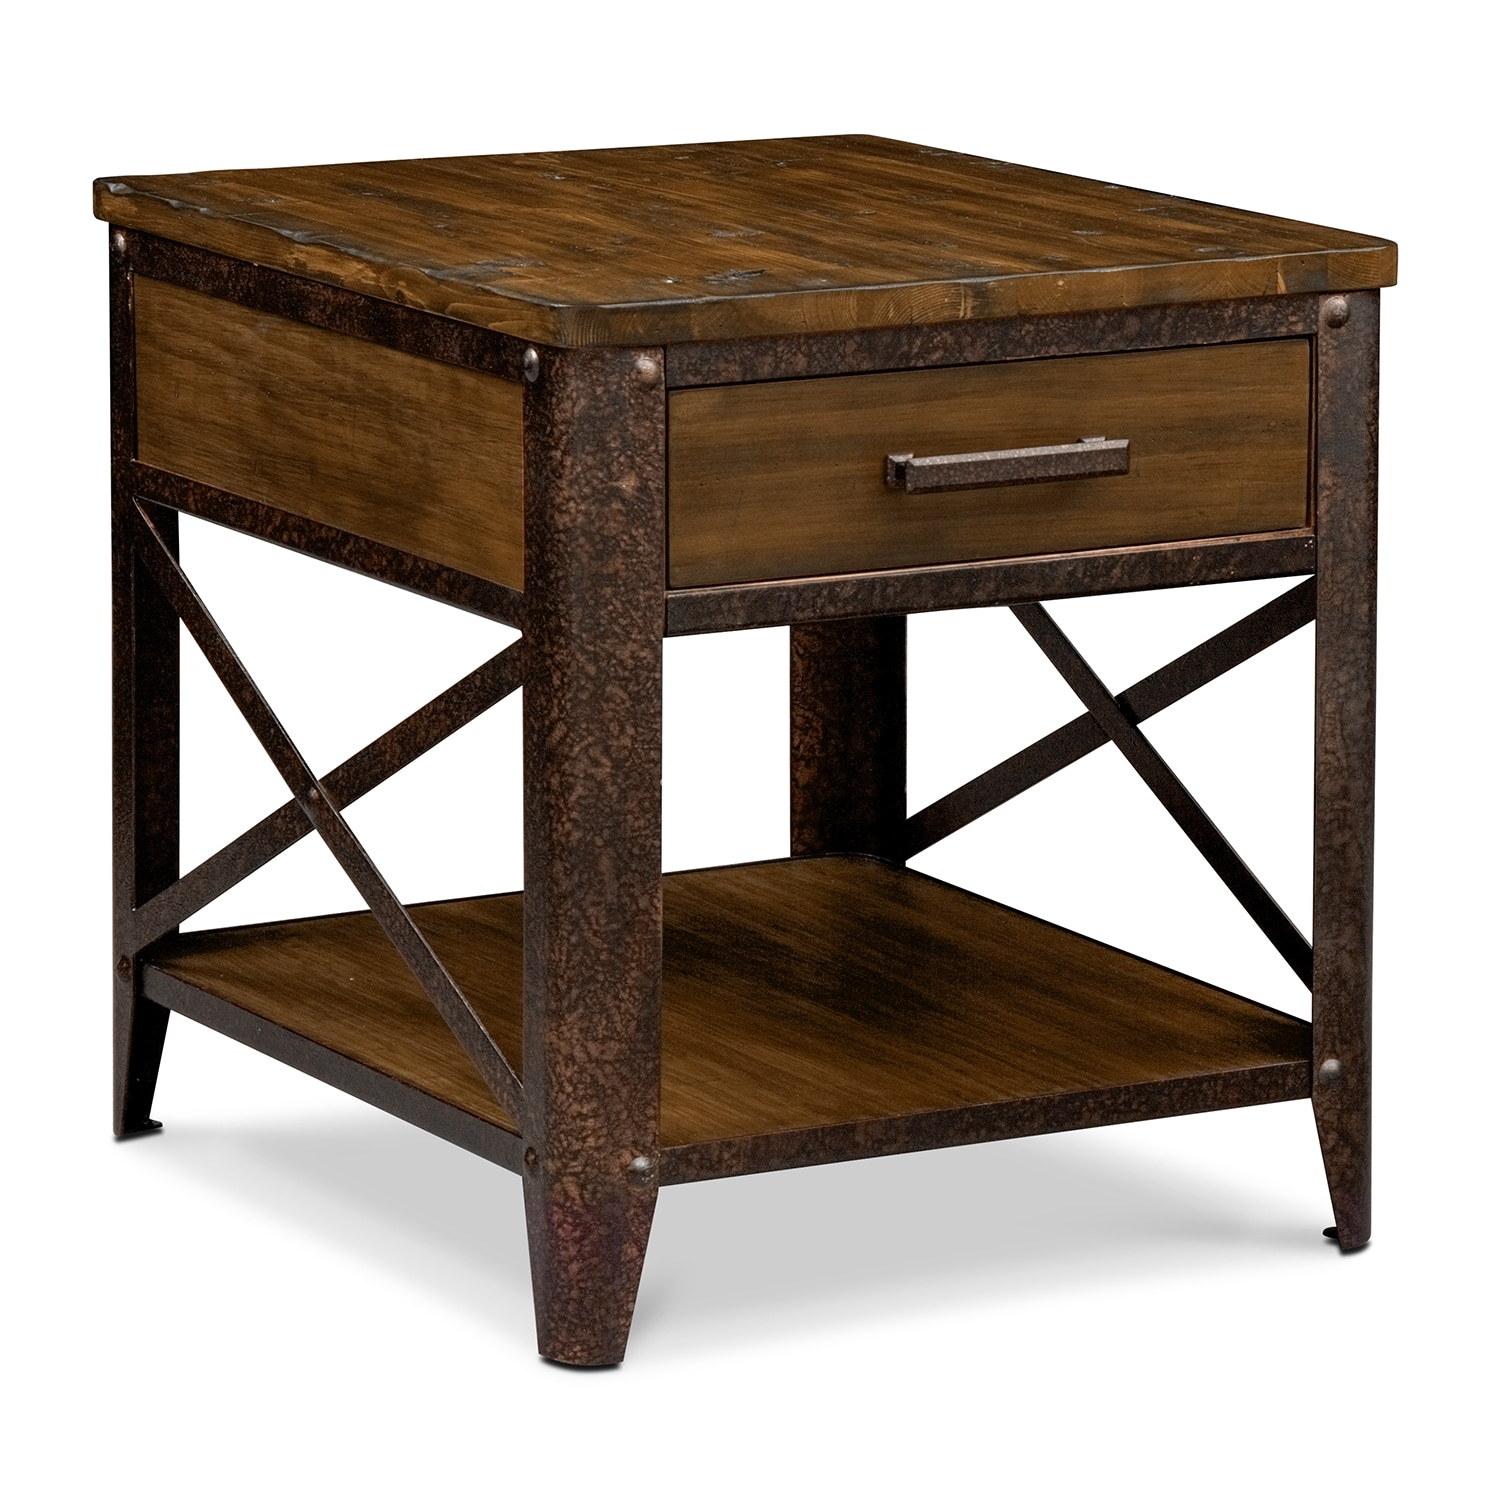 Shortline End Table - Distressed Pine